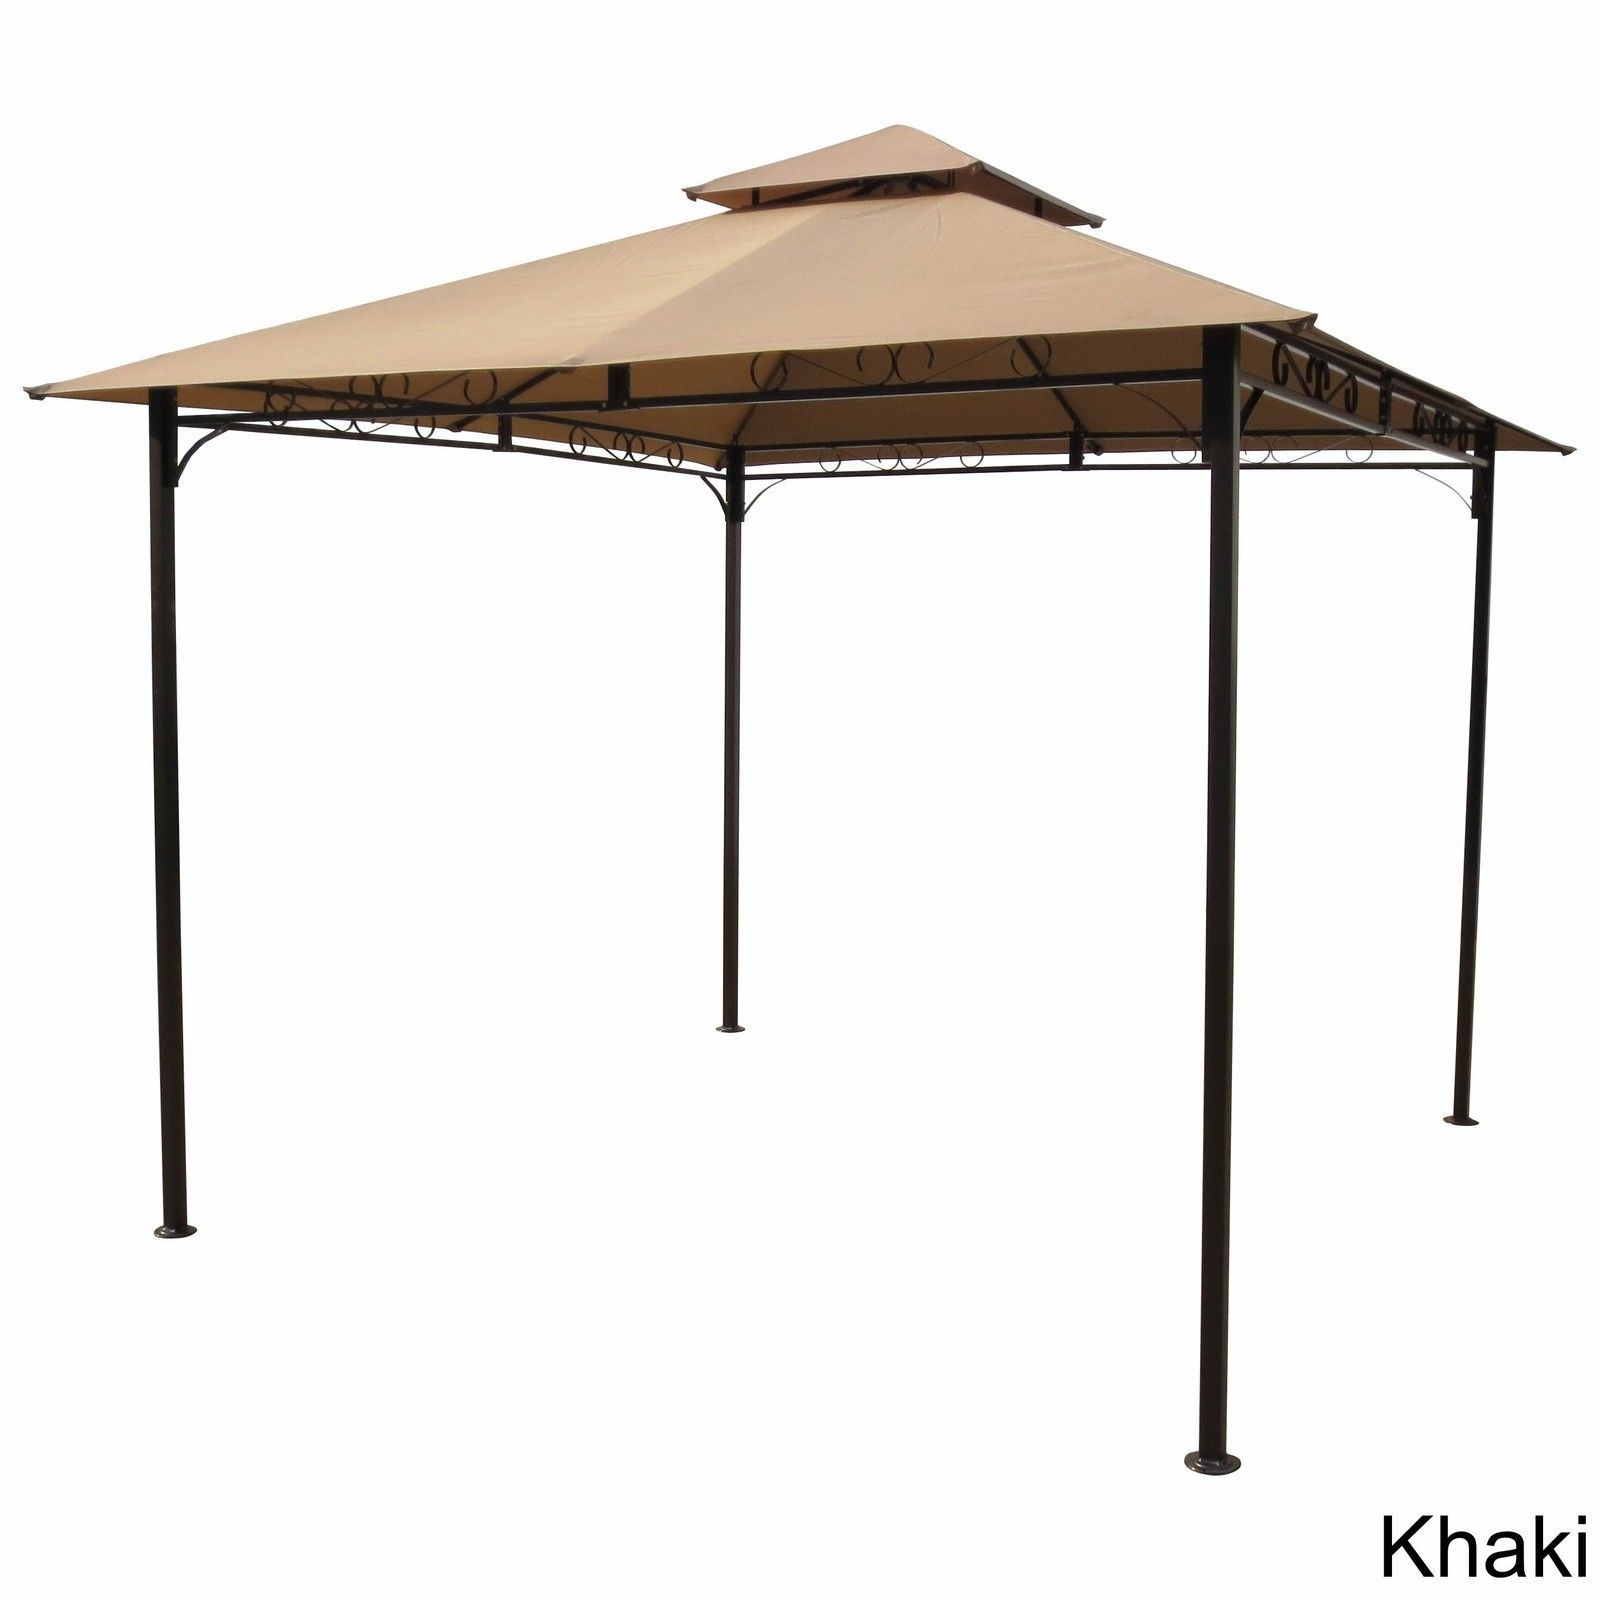 Details about Outdoor Canopy Tent Gazebo Pagoda Shelter Patio Yard Garden Party Shade Steel  sc 1 st  Pinterest & Details about Outdoor Canopy Tent Gazebo Pagoda Shelter Patio Yard ...